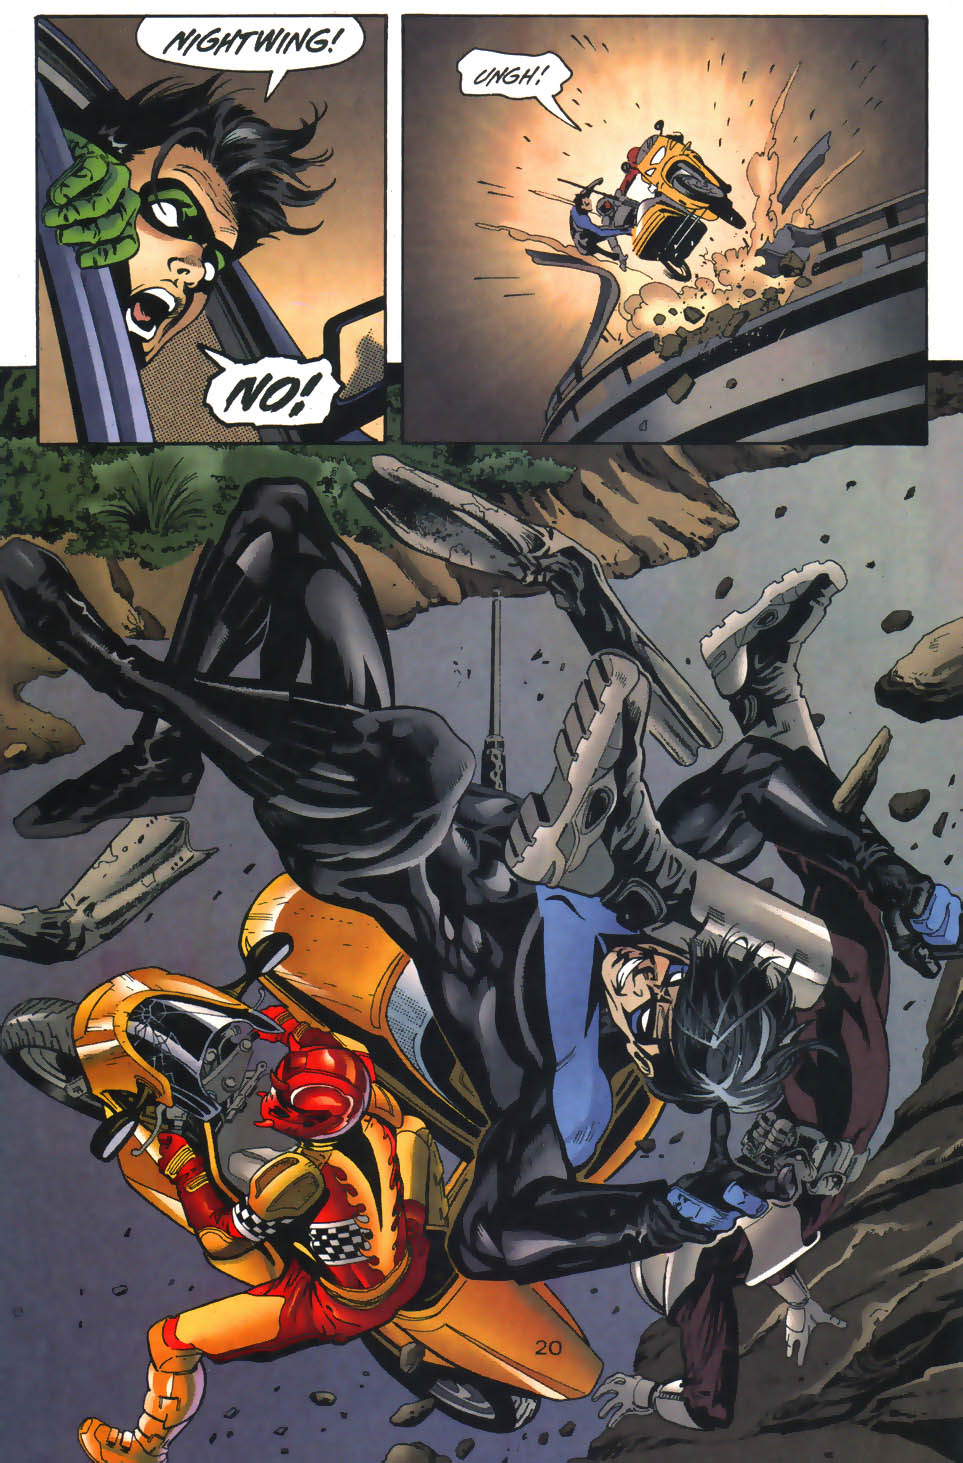 Nightwing 46 pg19 Thrilldevil.jpg